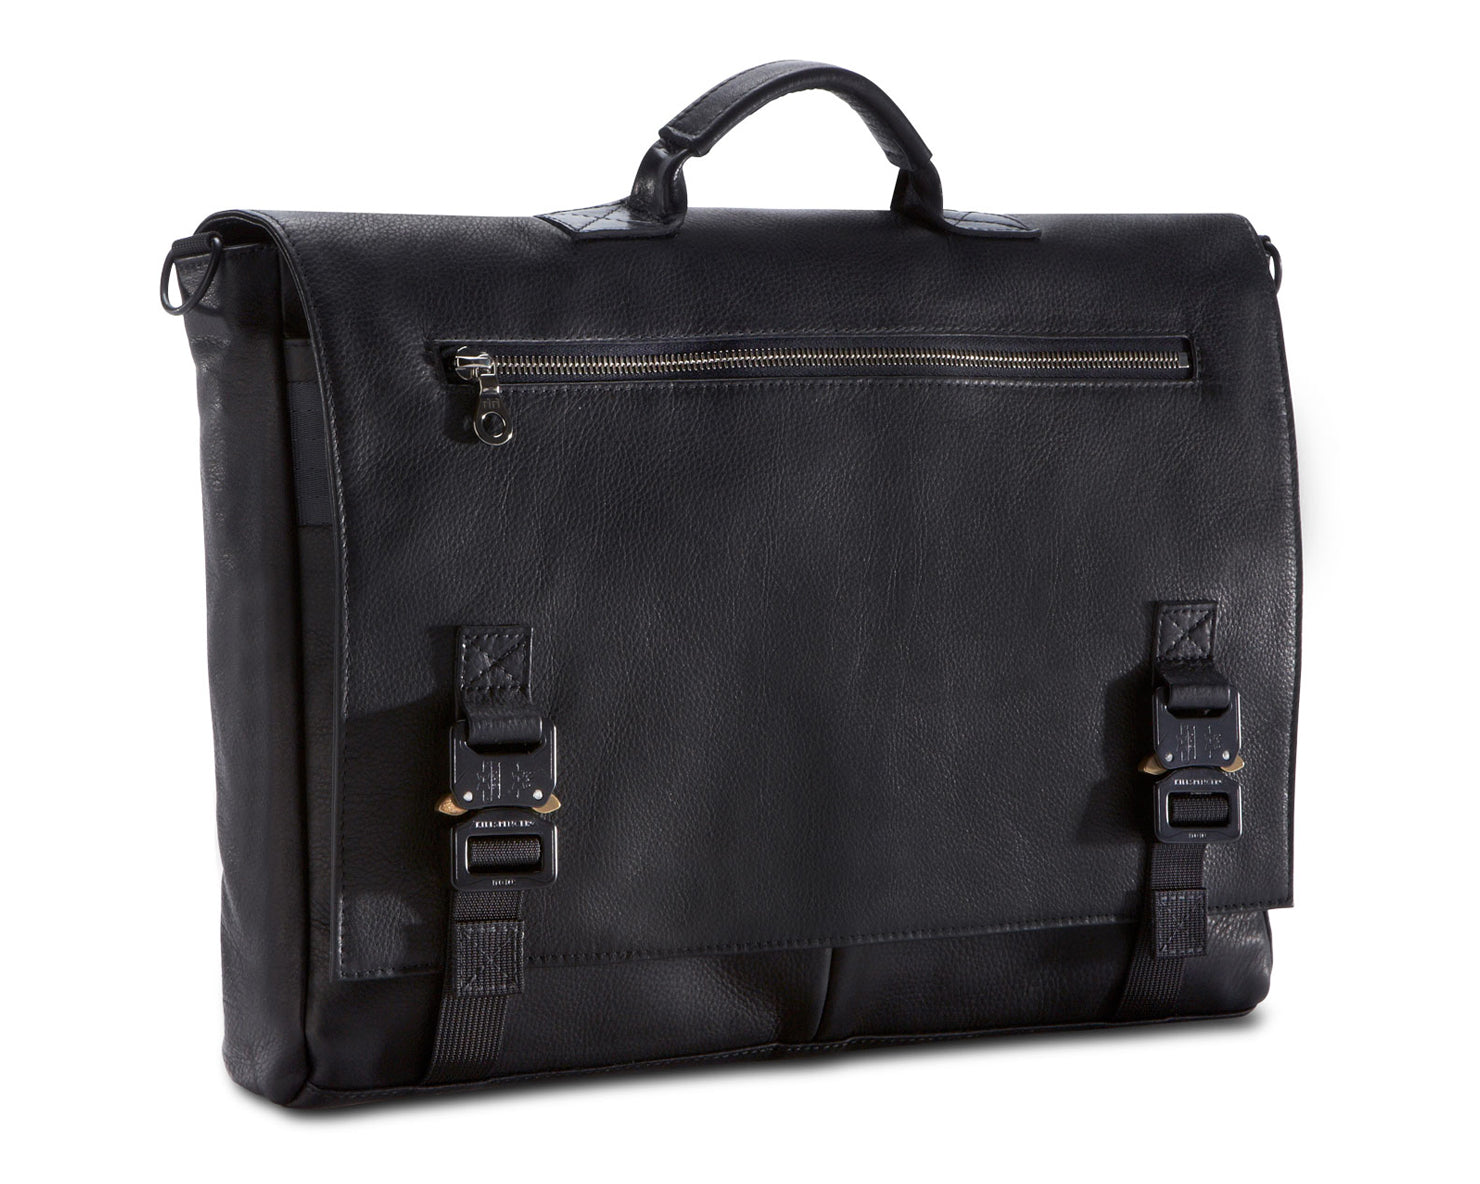 BRIEFCASE 2.0 | KILLSPENCER® - Black Leather